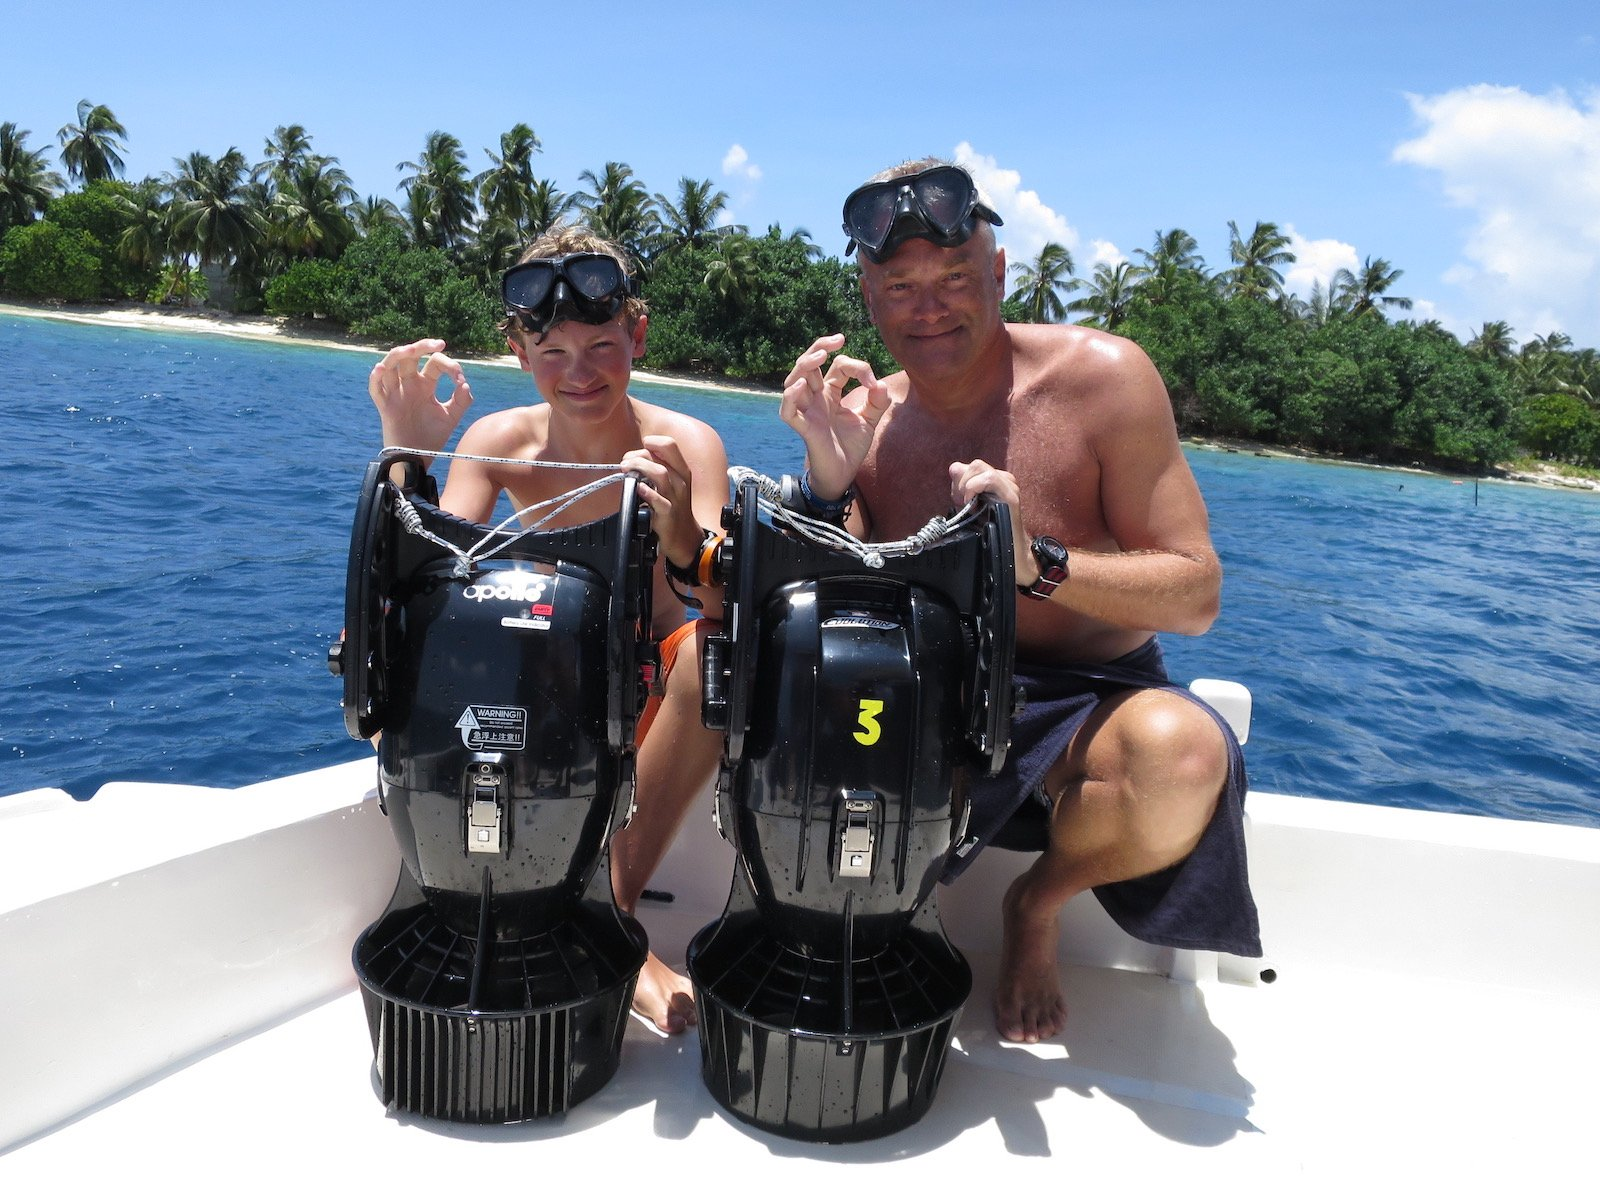 Specialty courses and becoming a Master Scuba Diver